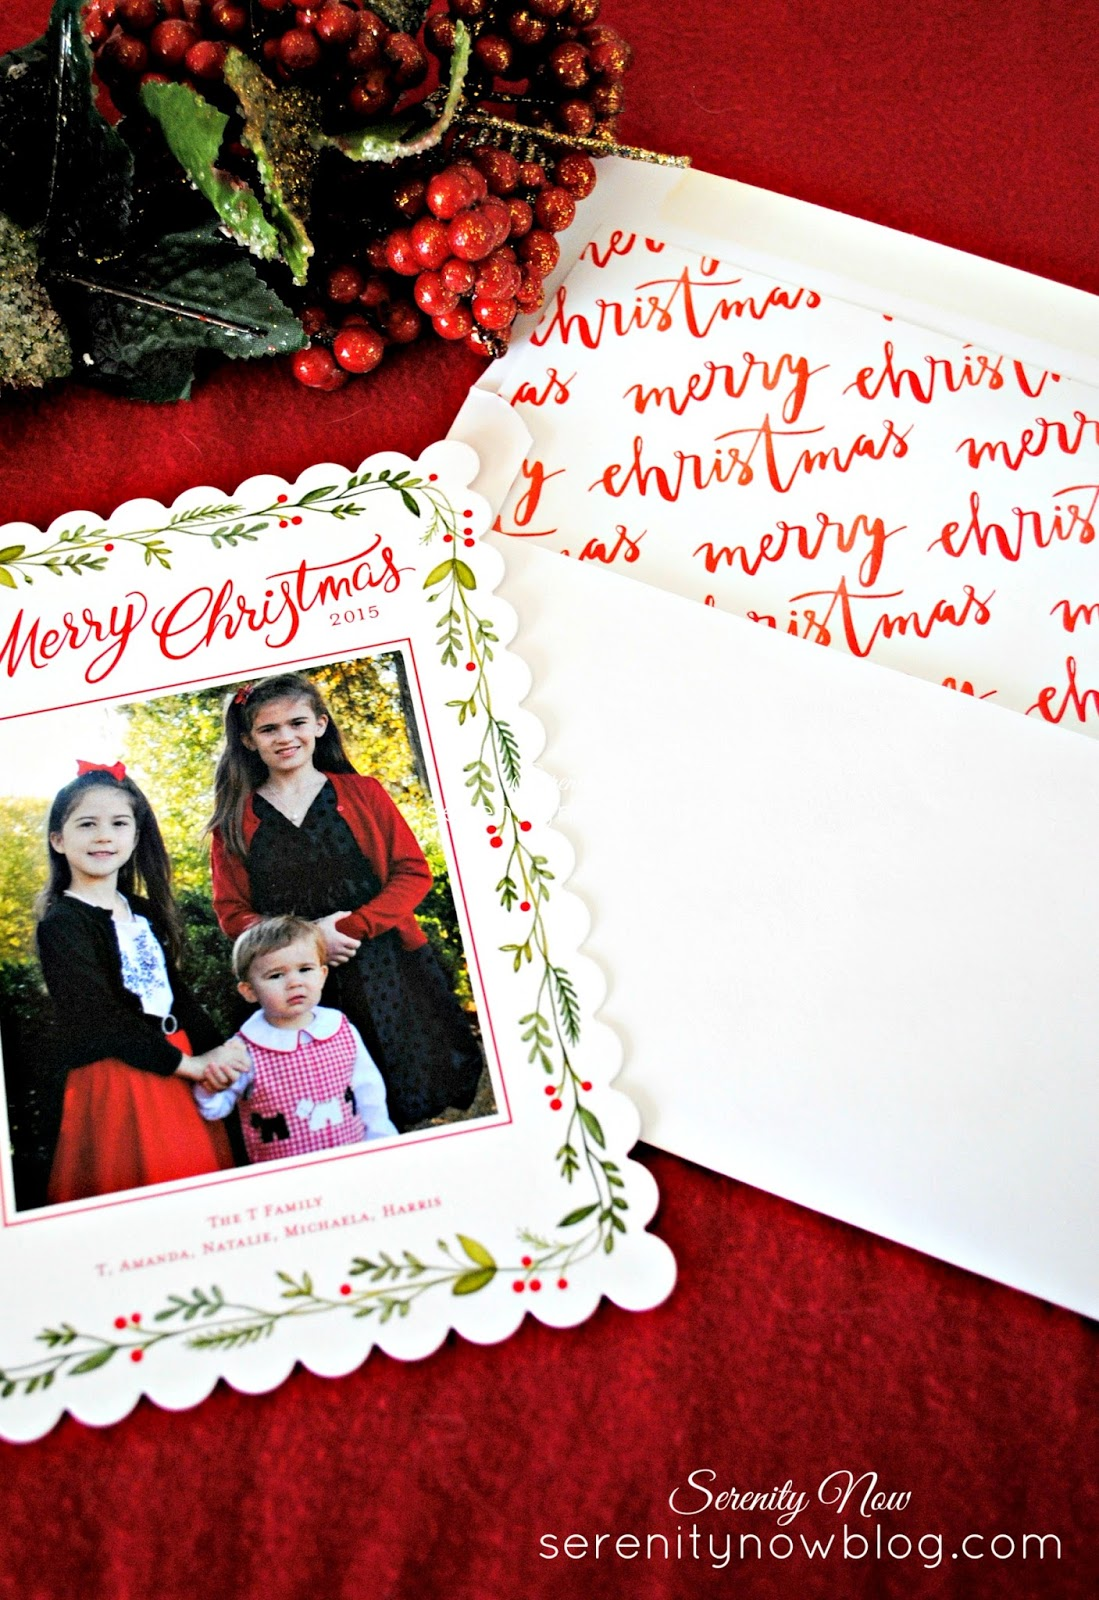 family christmas card ideas with shutterfly from serenity now - Christmas Photo Cards Ideas